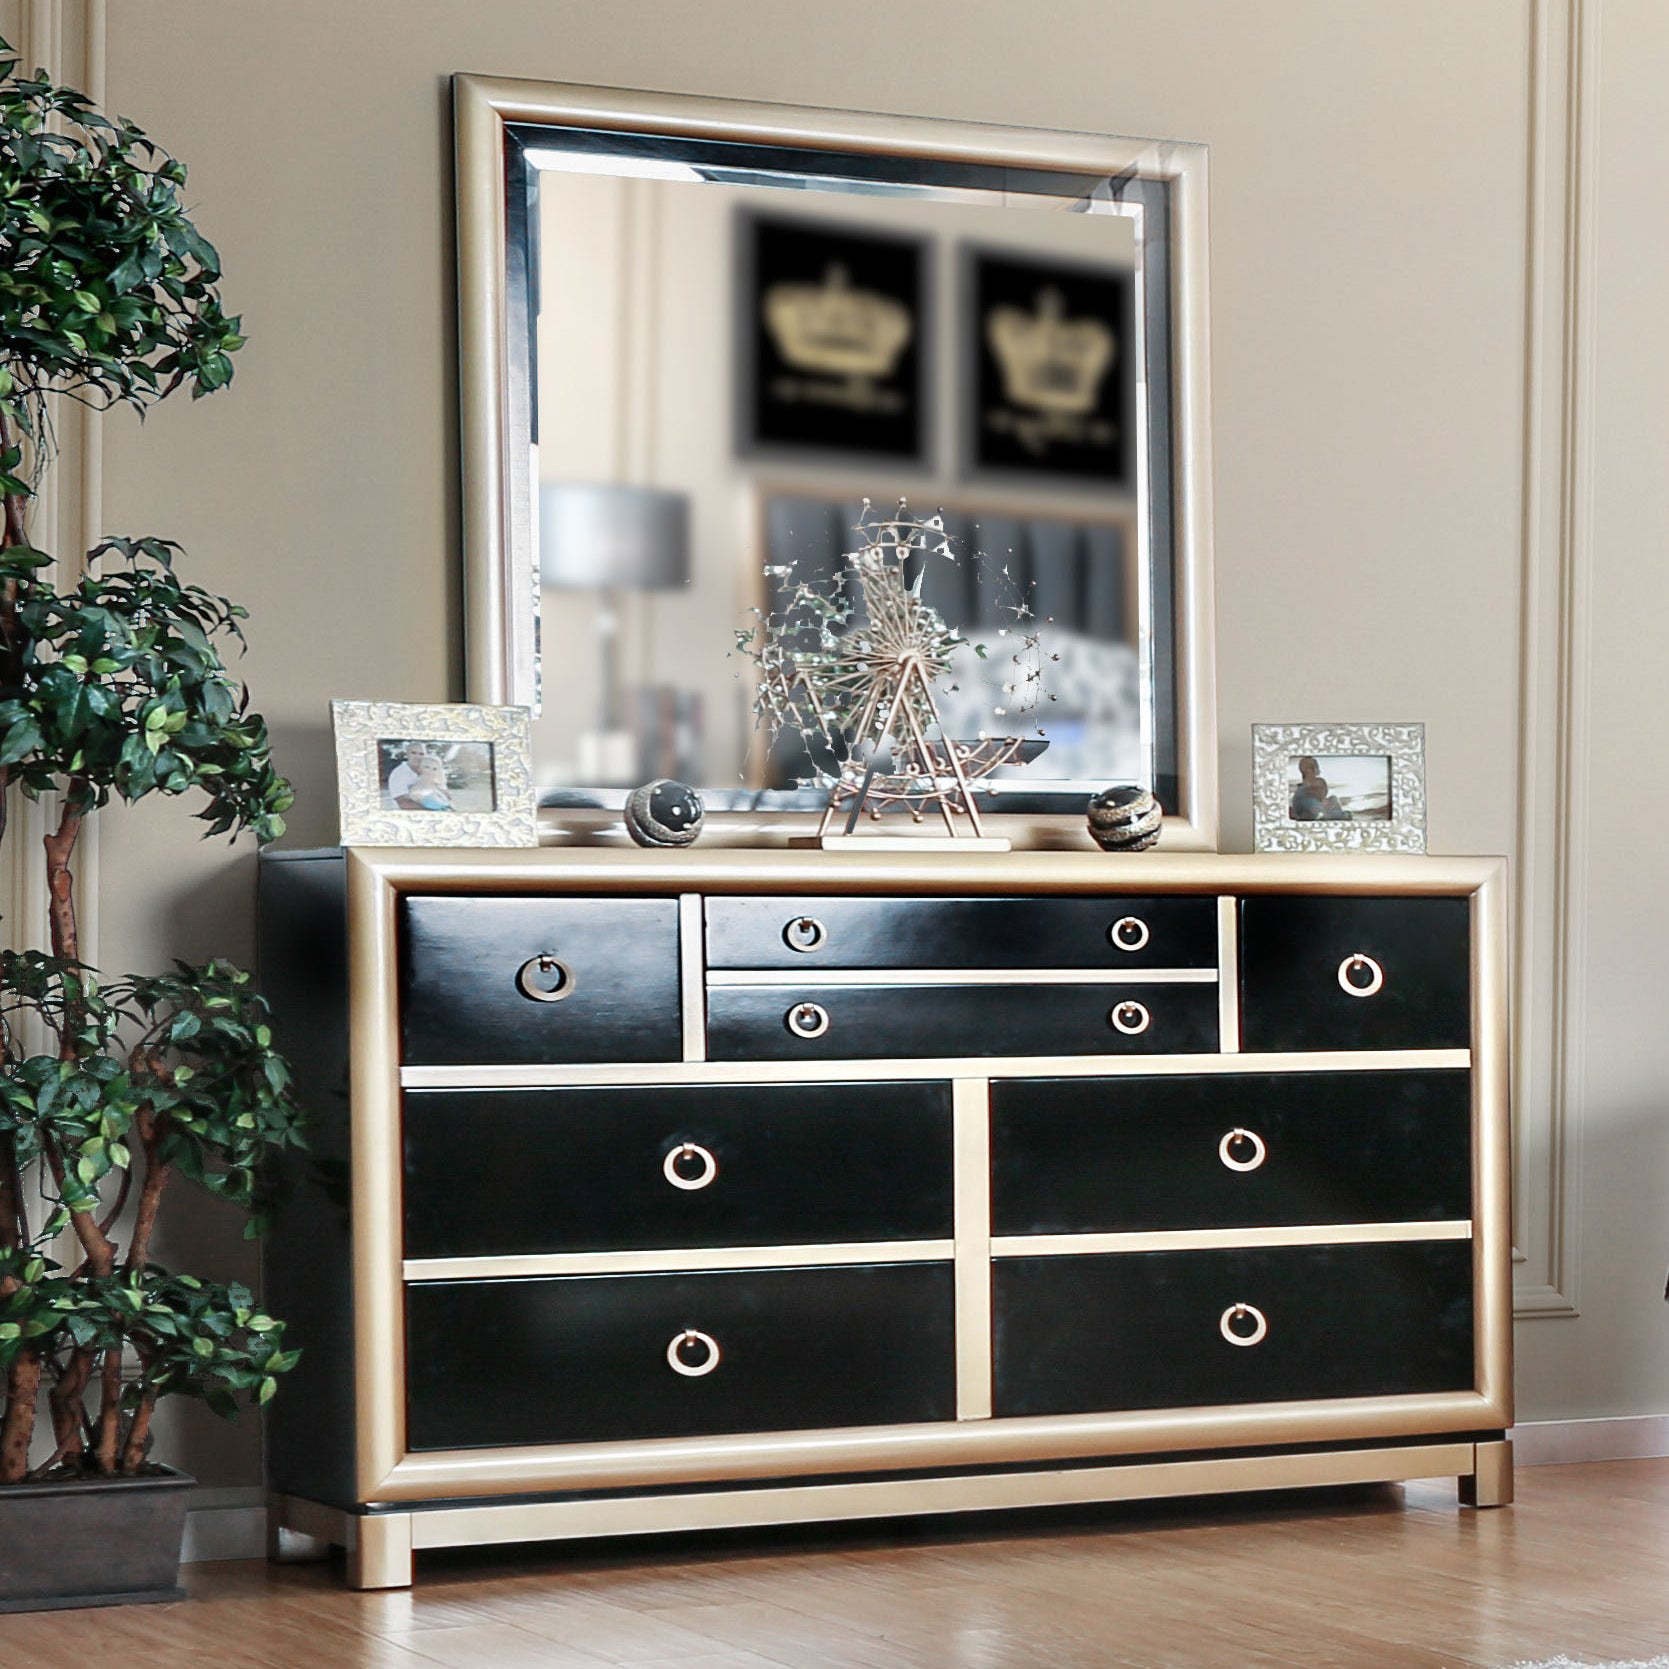 gold dresser bedroom imagination fabulous nightstand tv set mirror cabinet glass furniture black mirrored top